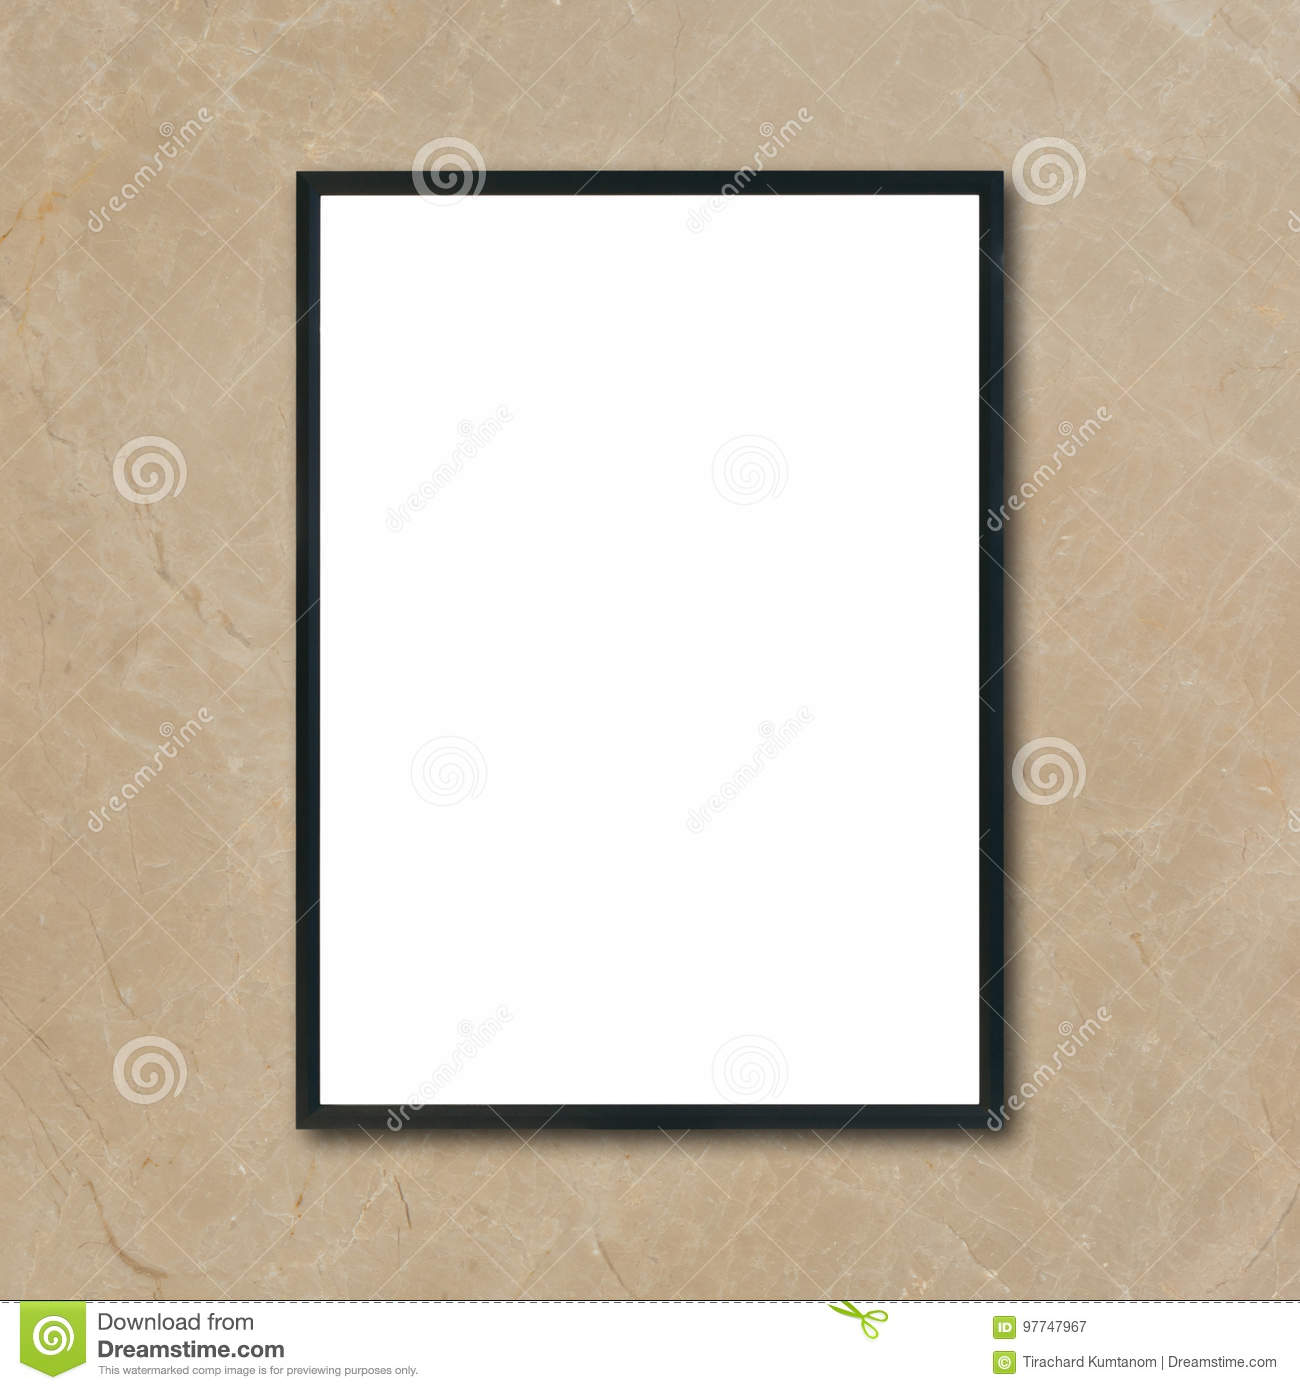 Mock up blank poster picture frame hanging on brown marble wall in room